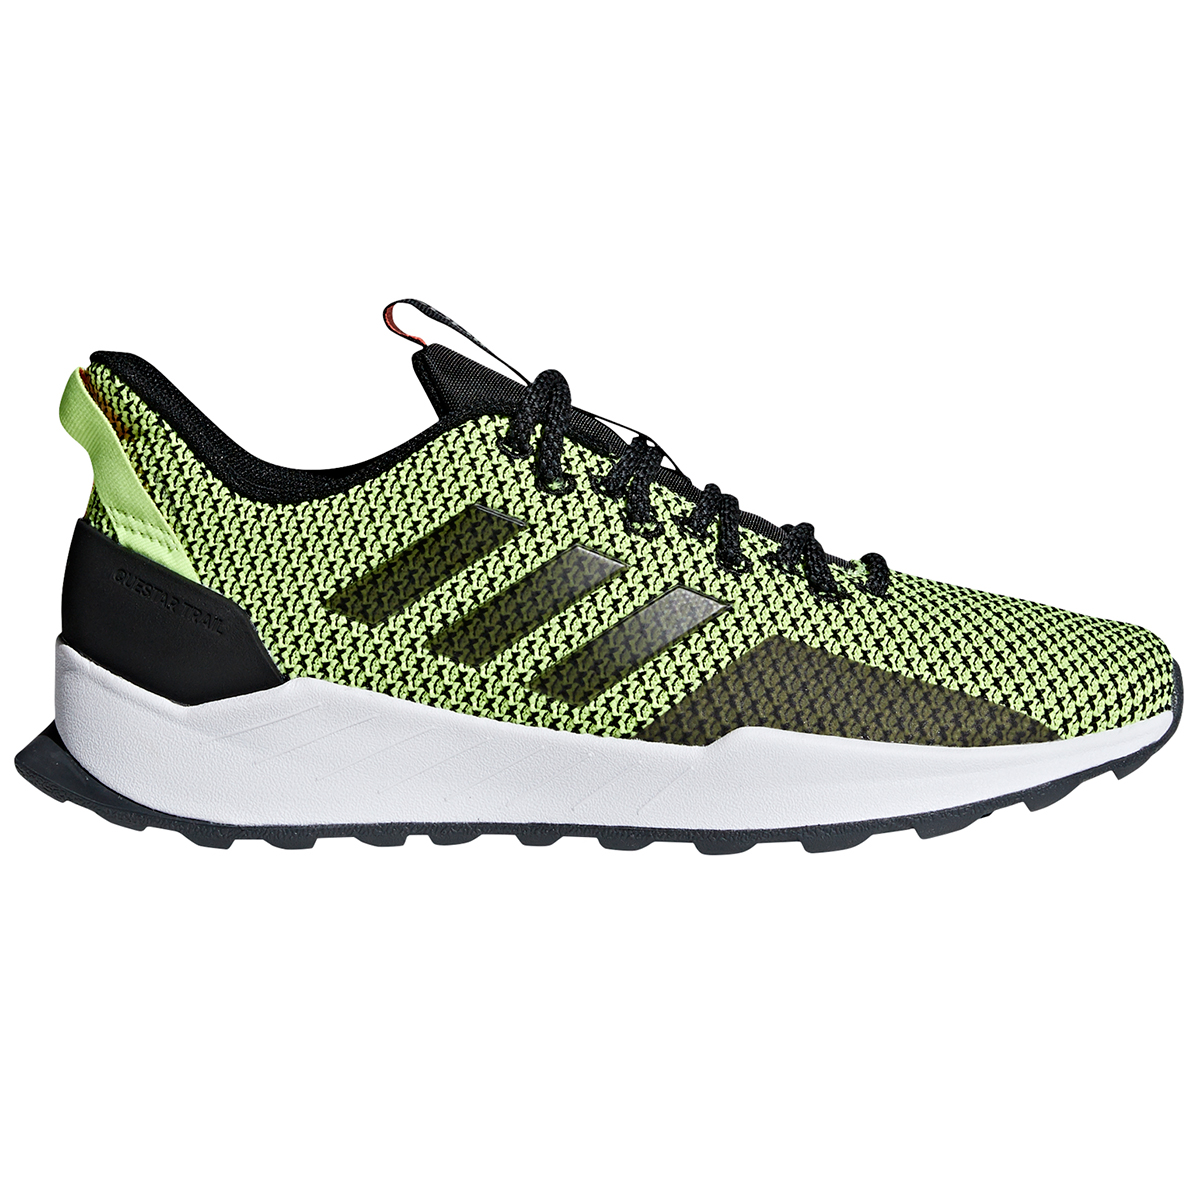 Adidas Men's Questar Trail Running Shoes - Black, 10